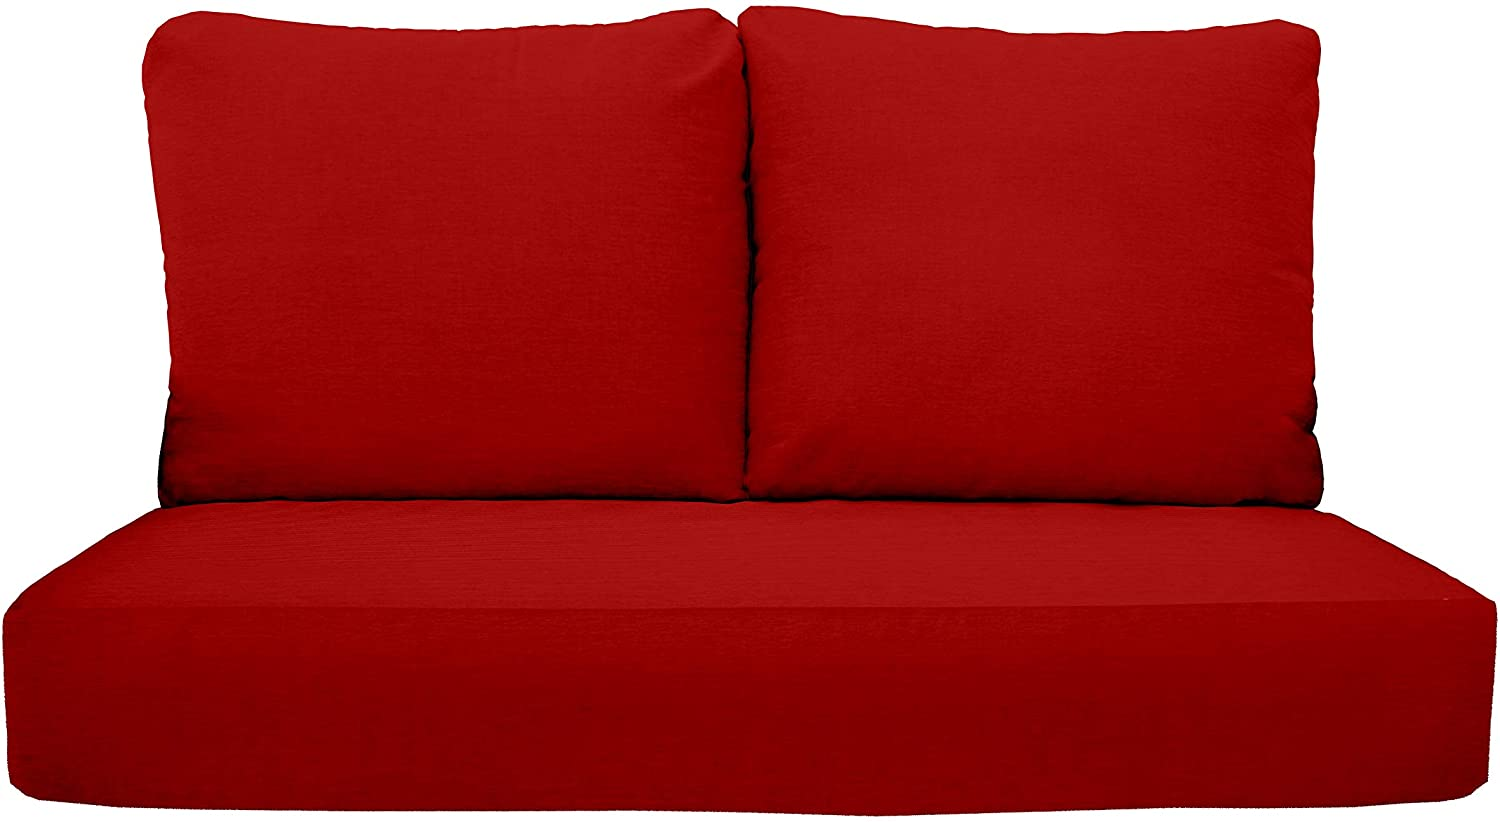 """RSH Décor Indoor Outdoor Deep Seating Loveseat Cushion Set, 1- 46"""" x 26"""" x 5"""" Seat and 2- 25"""" x 21"""" Backs, Choose Color (Red)"""